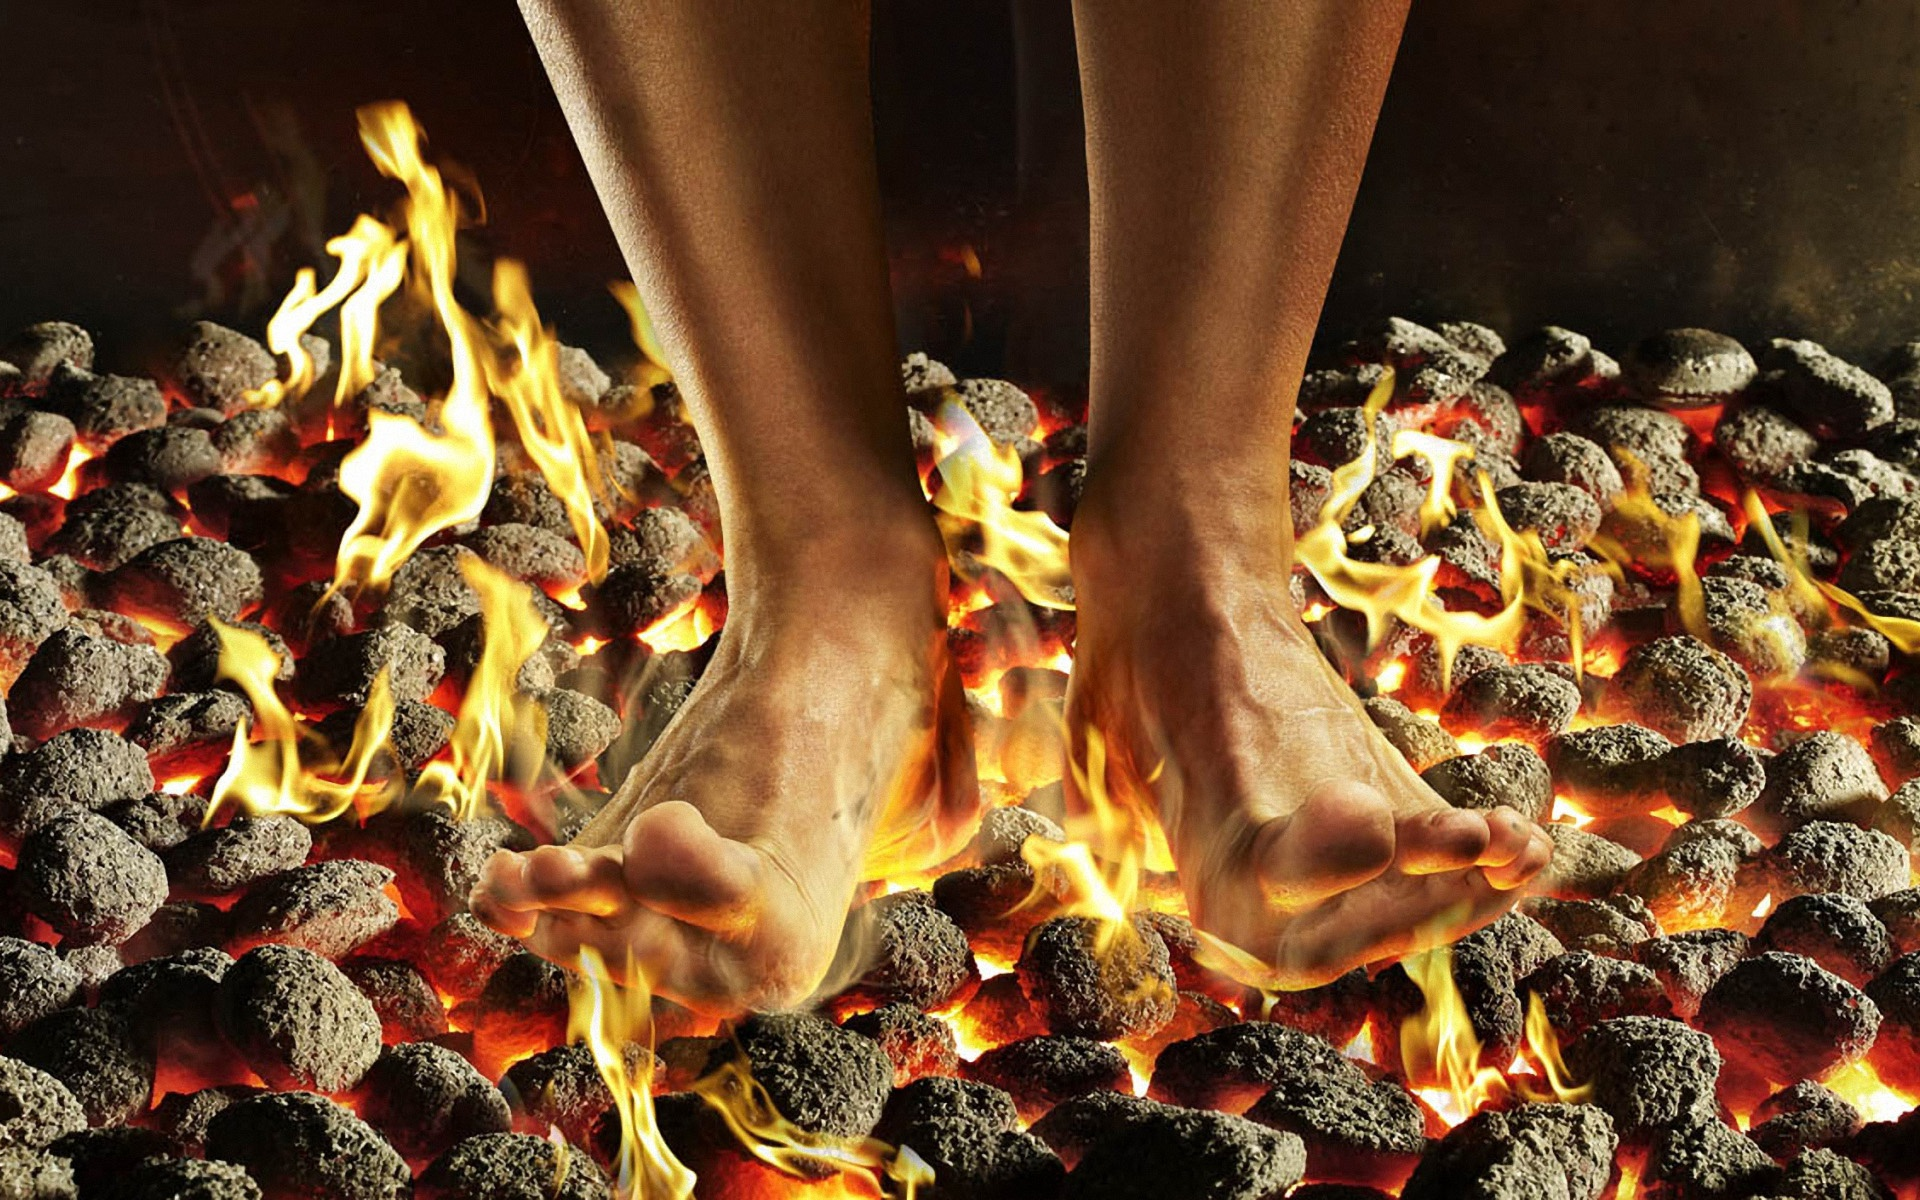 Burning and stinging pain from peripheral neuropathy